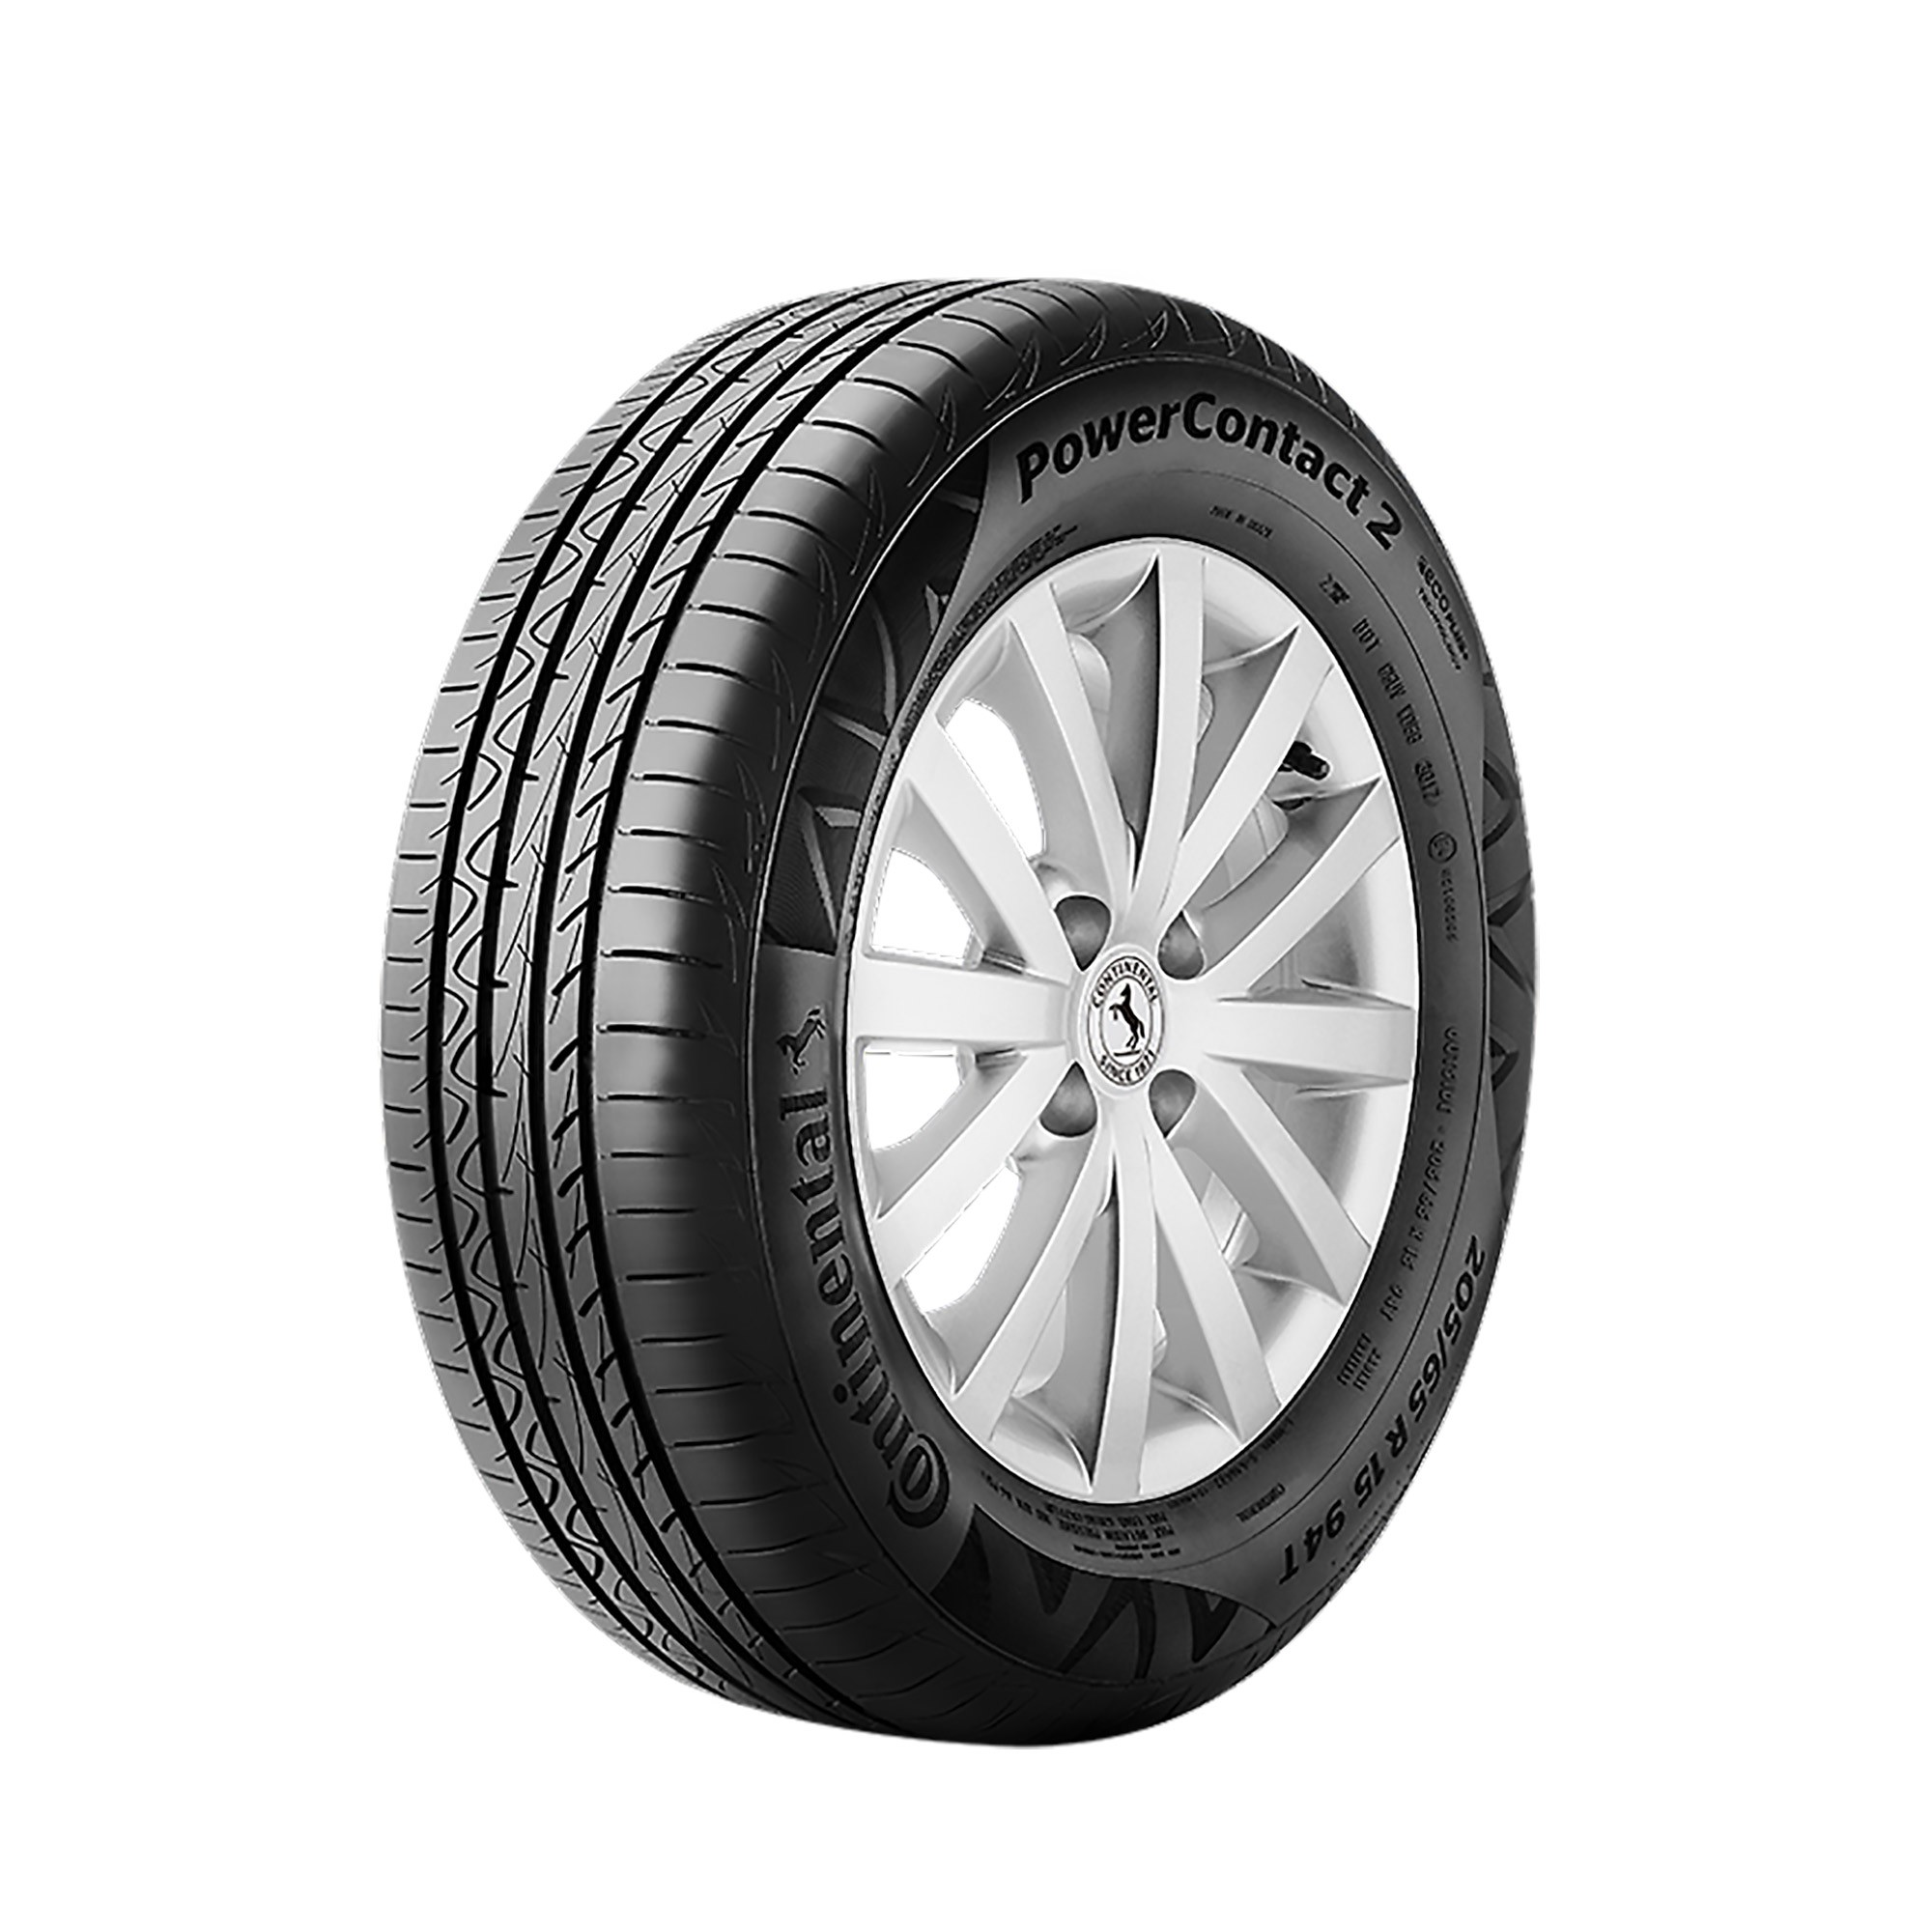 PNEU 175/65R14 82T POWERCONTACT 2 CONTINENTAL